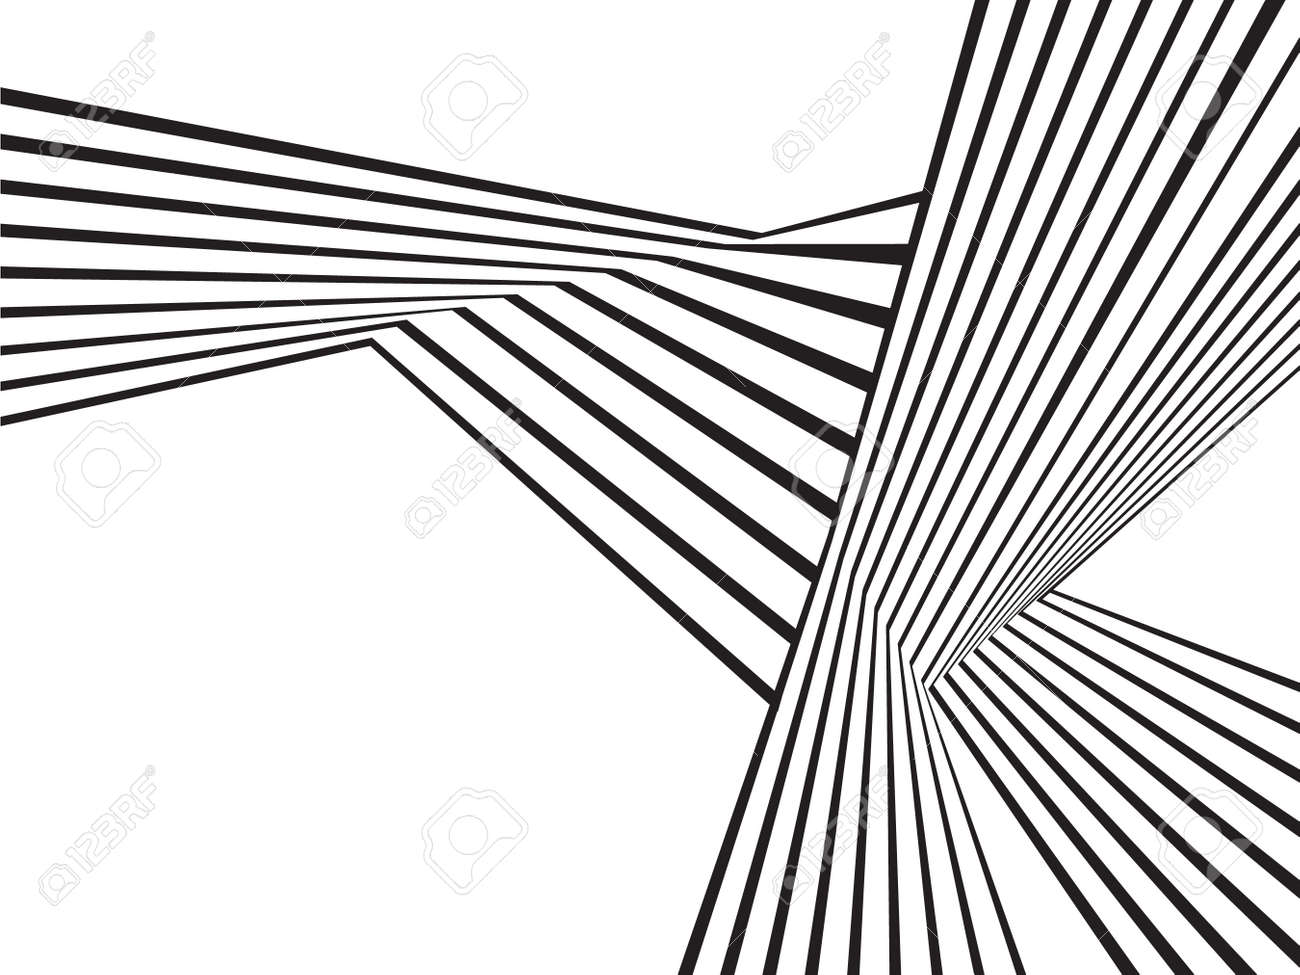 Black And White Mobious Wave Stripe Optical Abstract Design Royalty